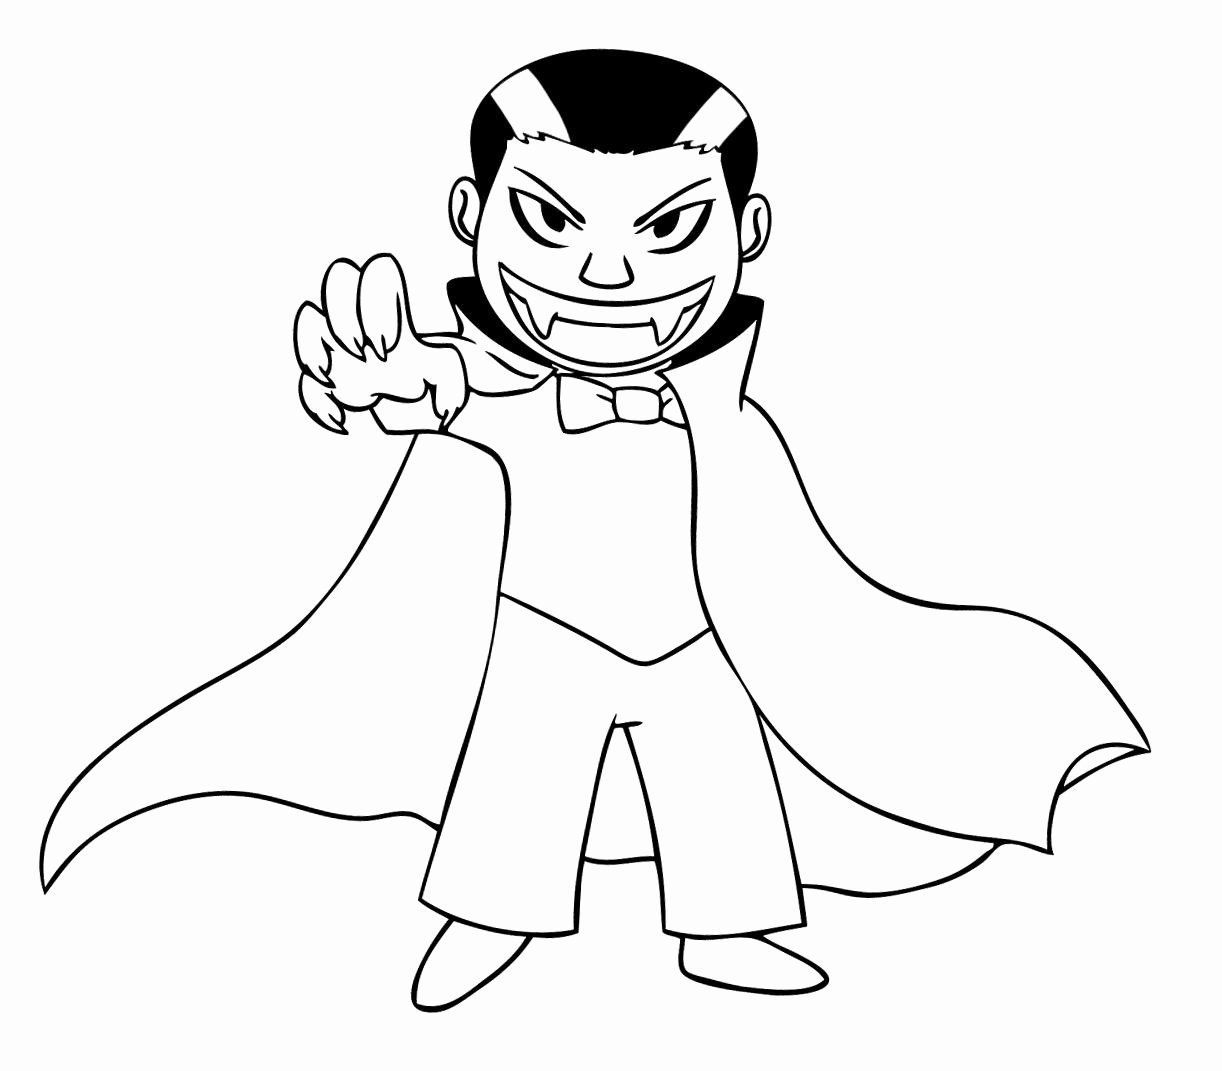 Halloween Vampire Coloring Pages Lovely Coloring Pages Of Male